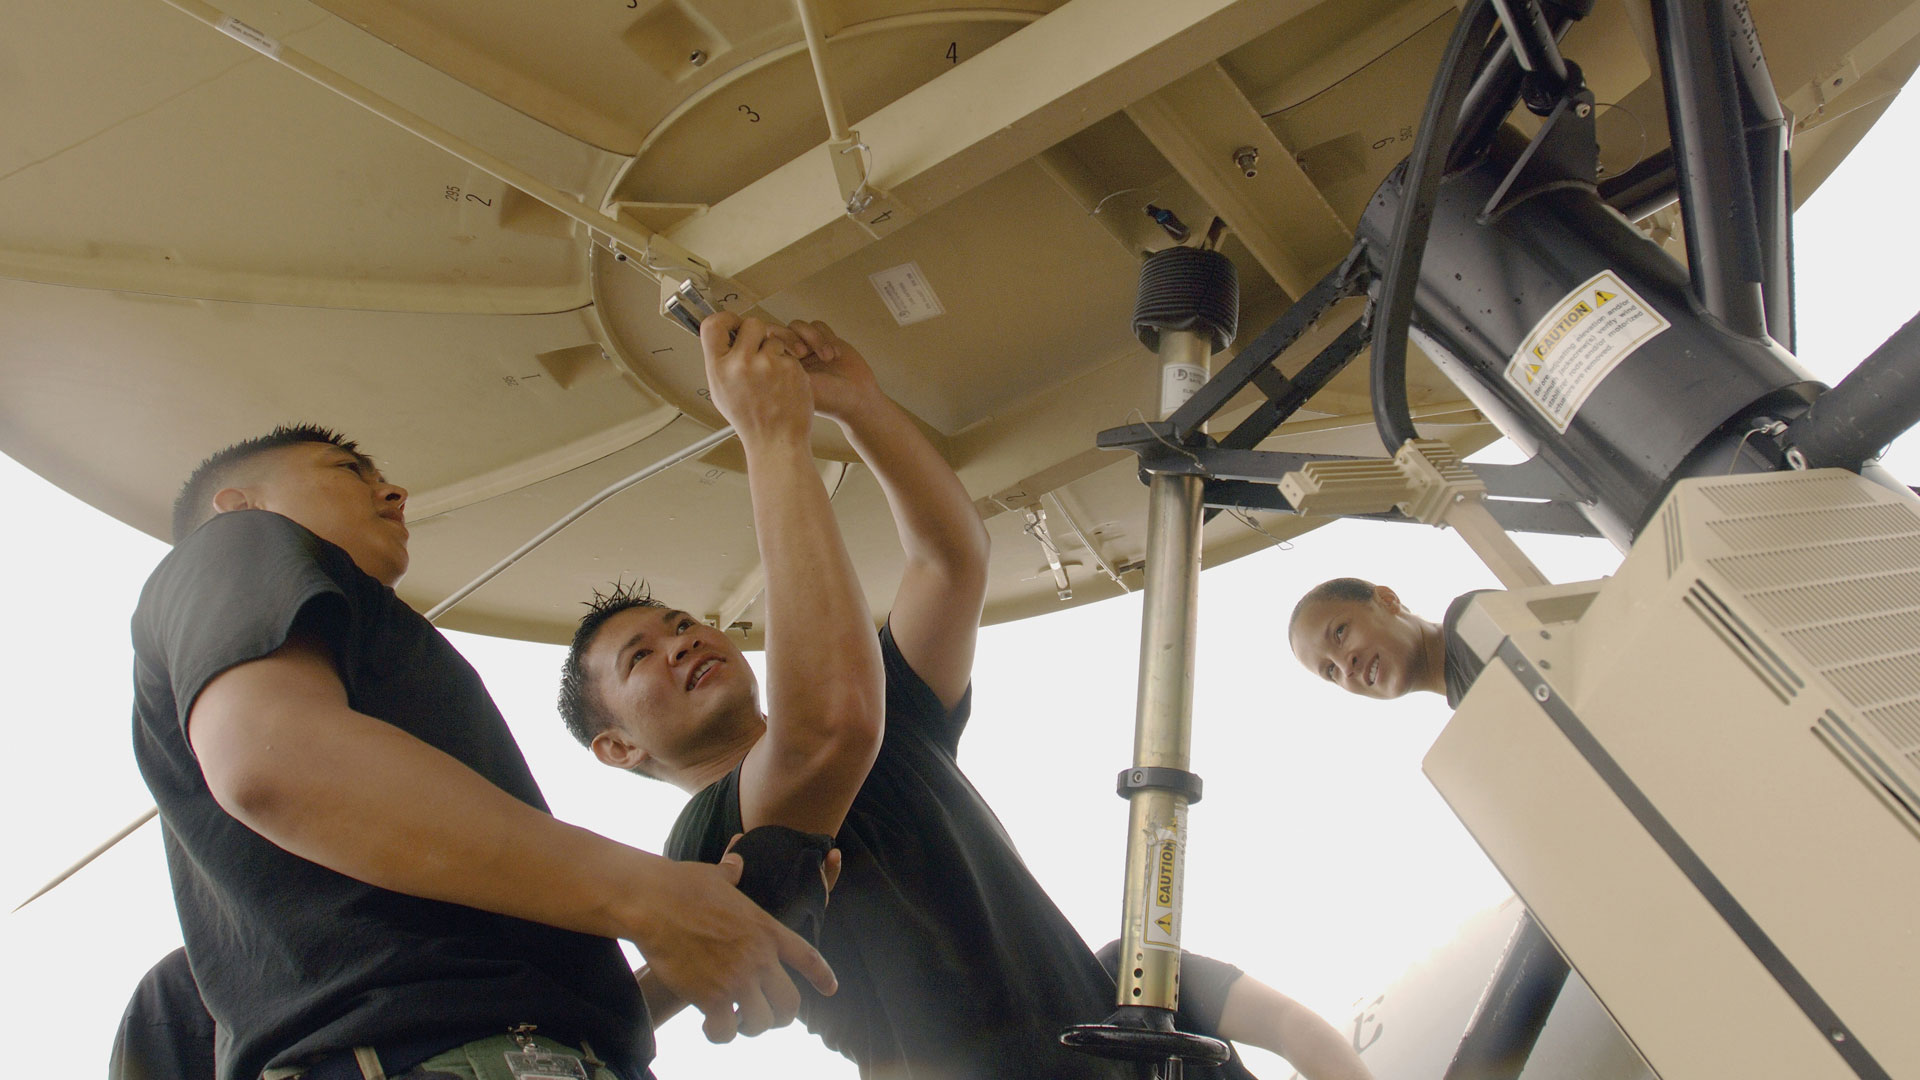 3 employees servicing satellite in the field